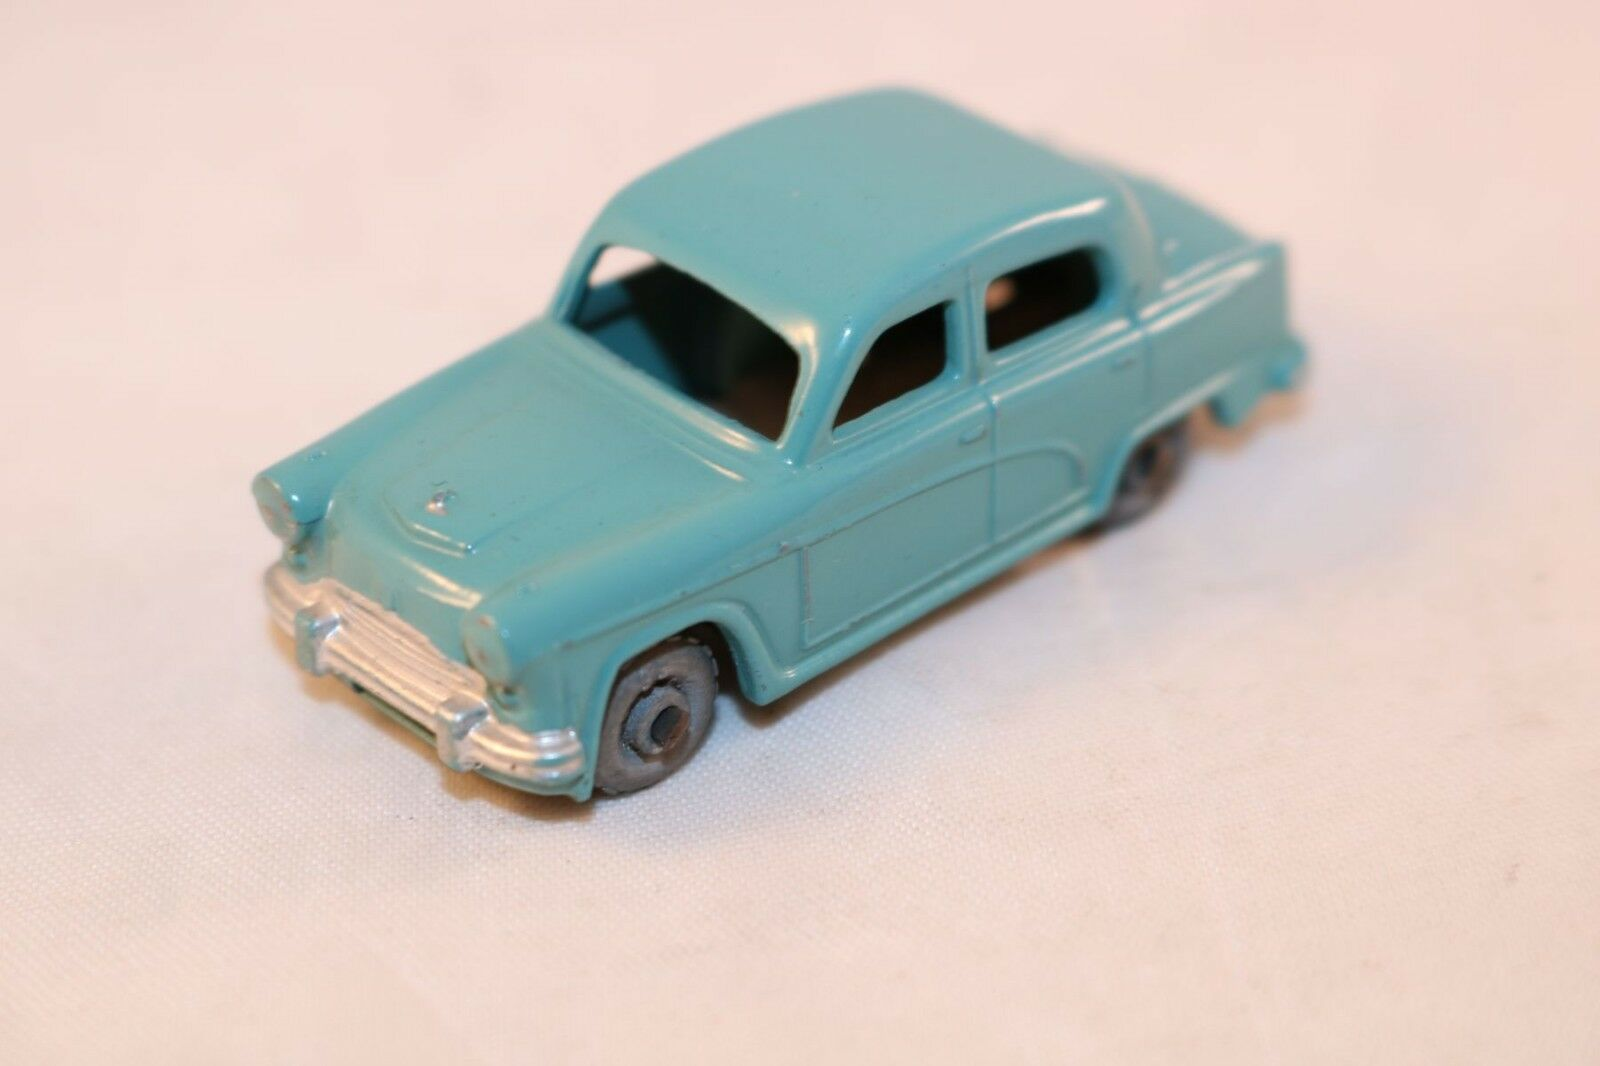 Matchbox A Moko Lesney No 36 Austin A50 with GMW in mint condition